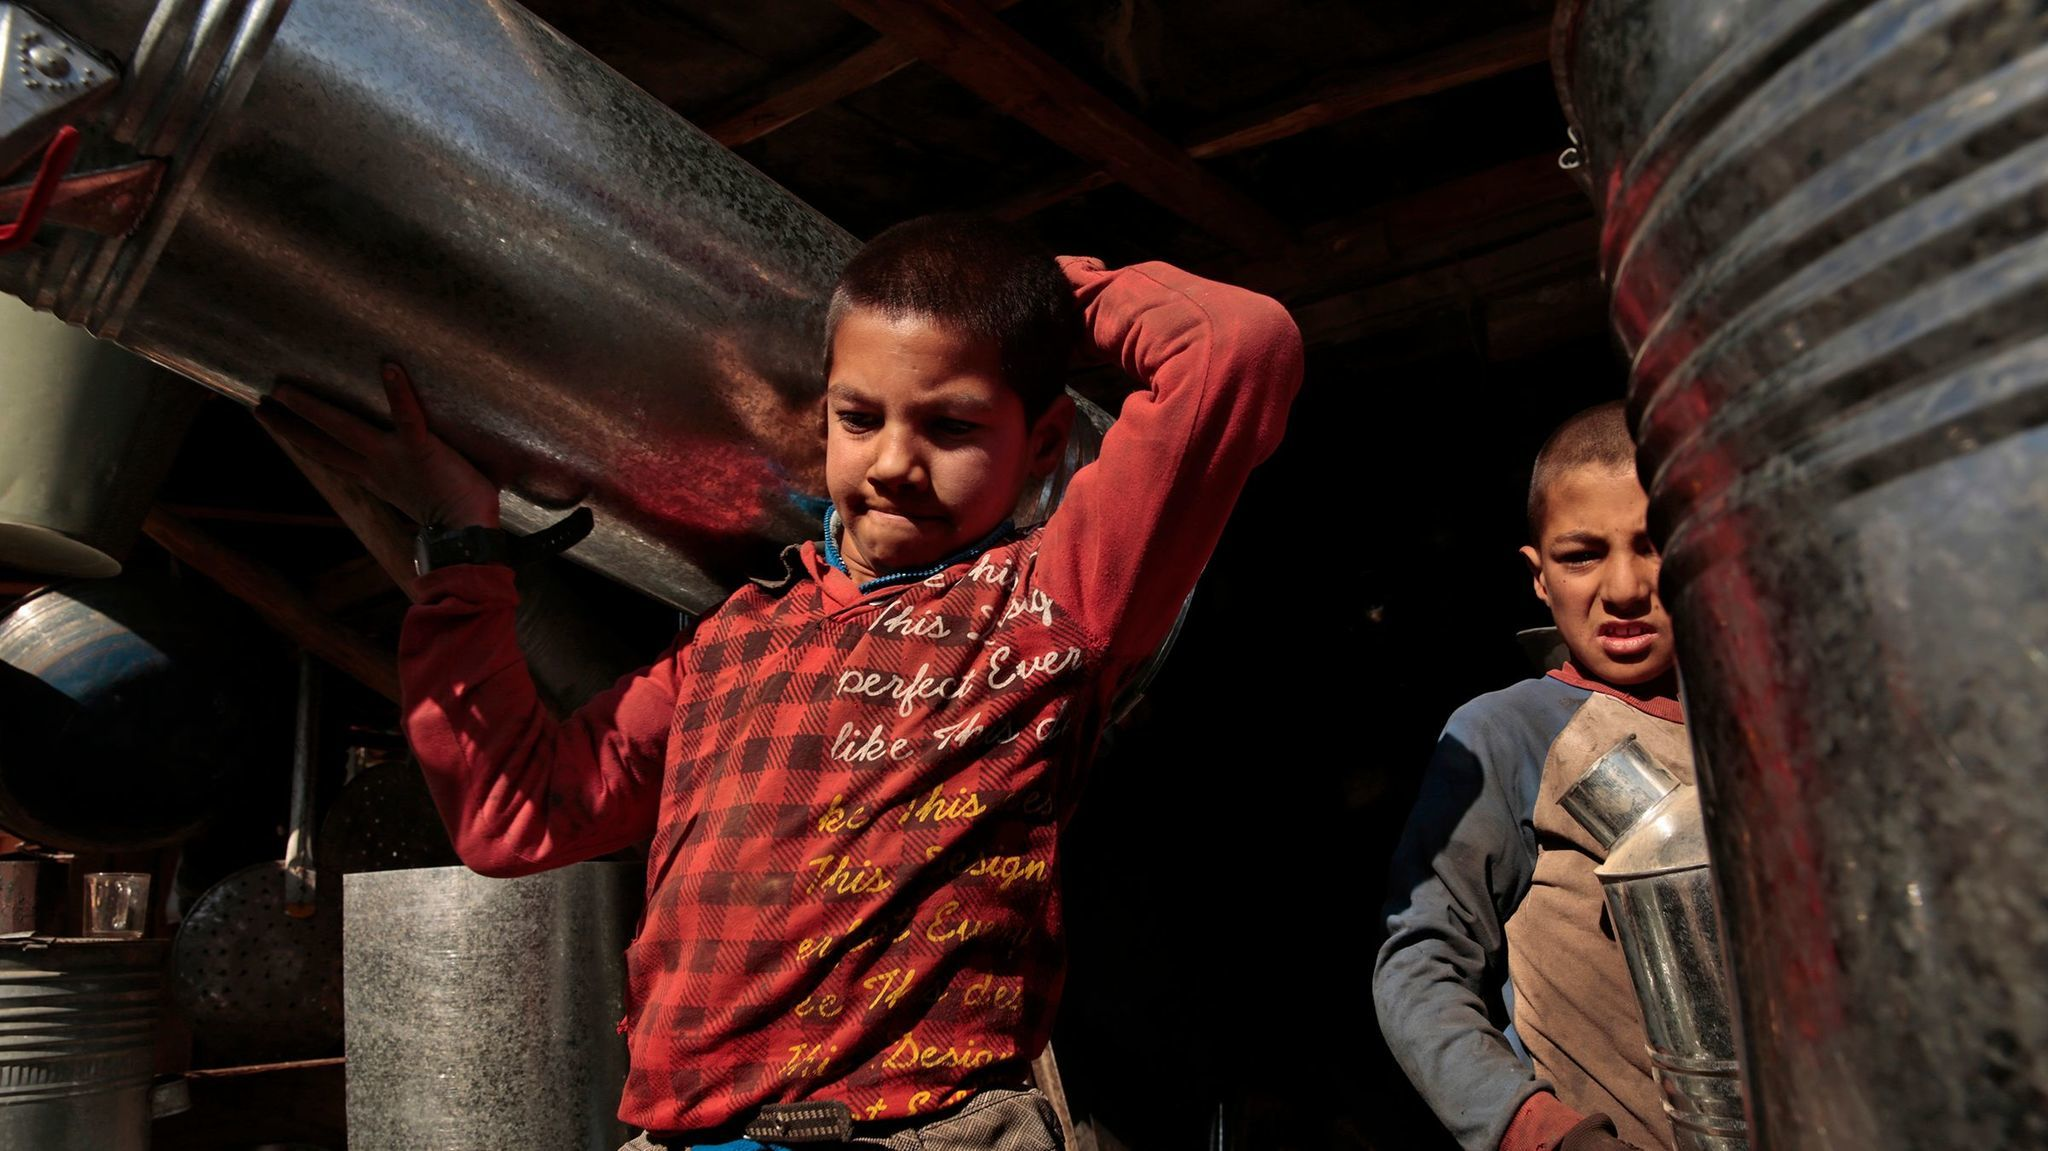 Brothers Hekmat, 12, left, and Qudratulla, 9, as they work in a metal shop in Kabul, Afghanistan, where they help make water heaters and other metal items for $6 per week, in 2014